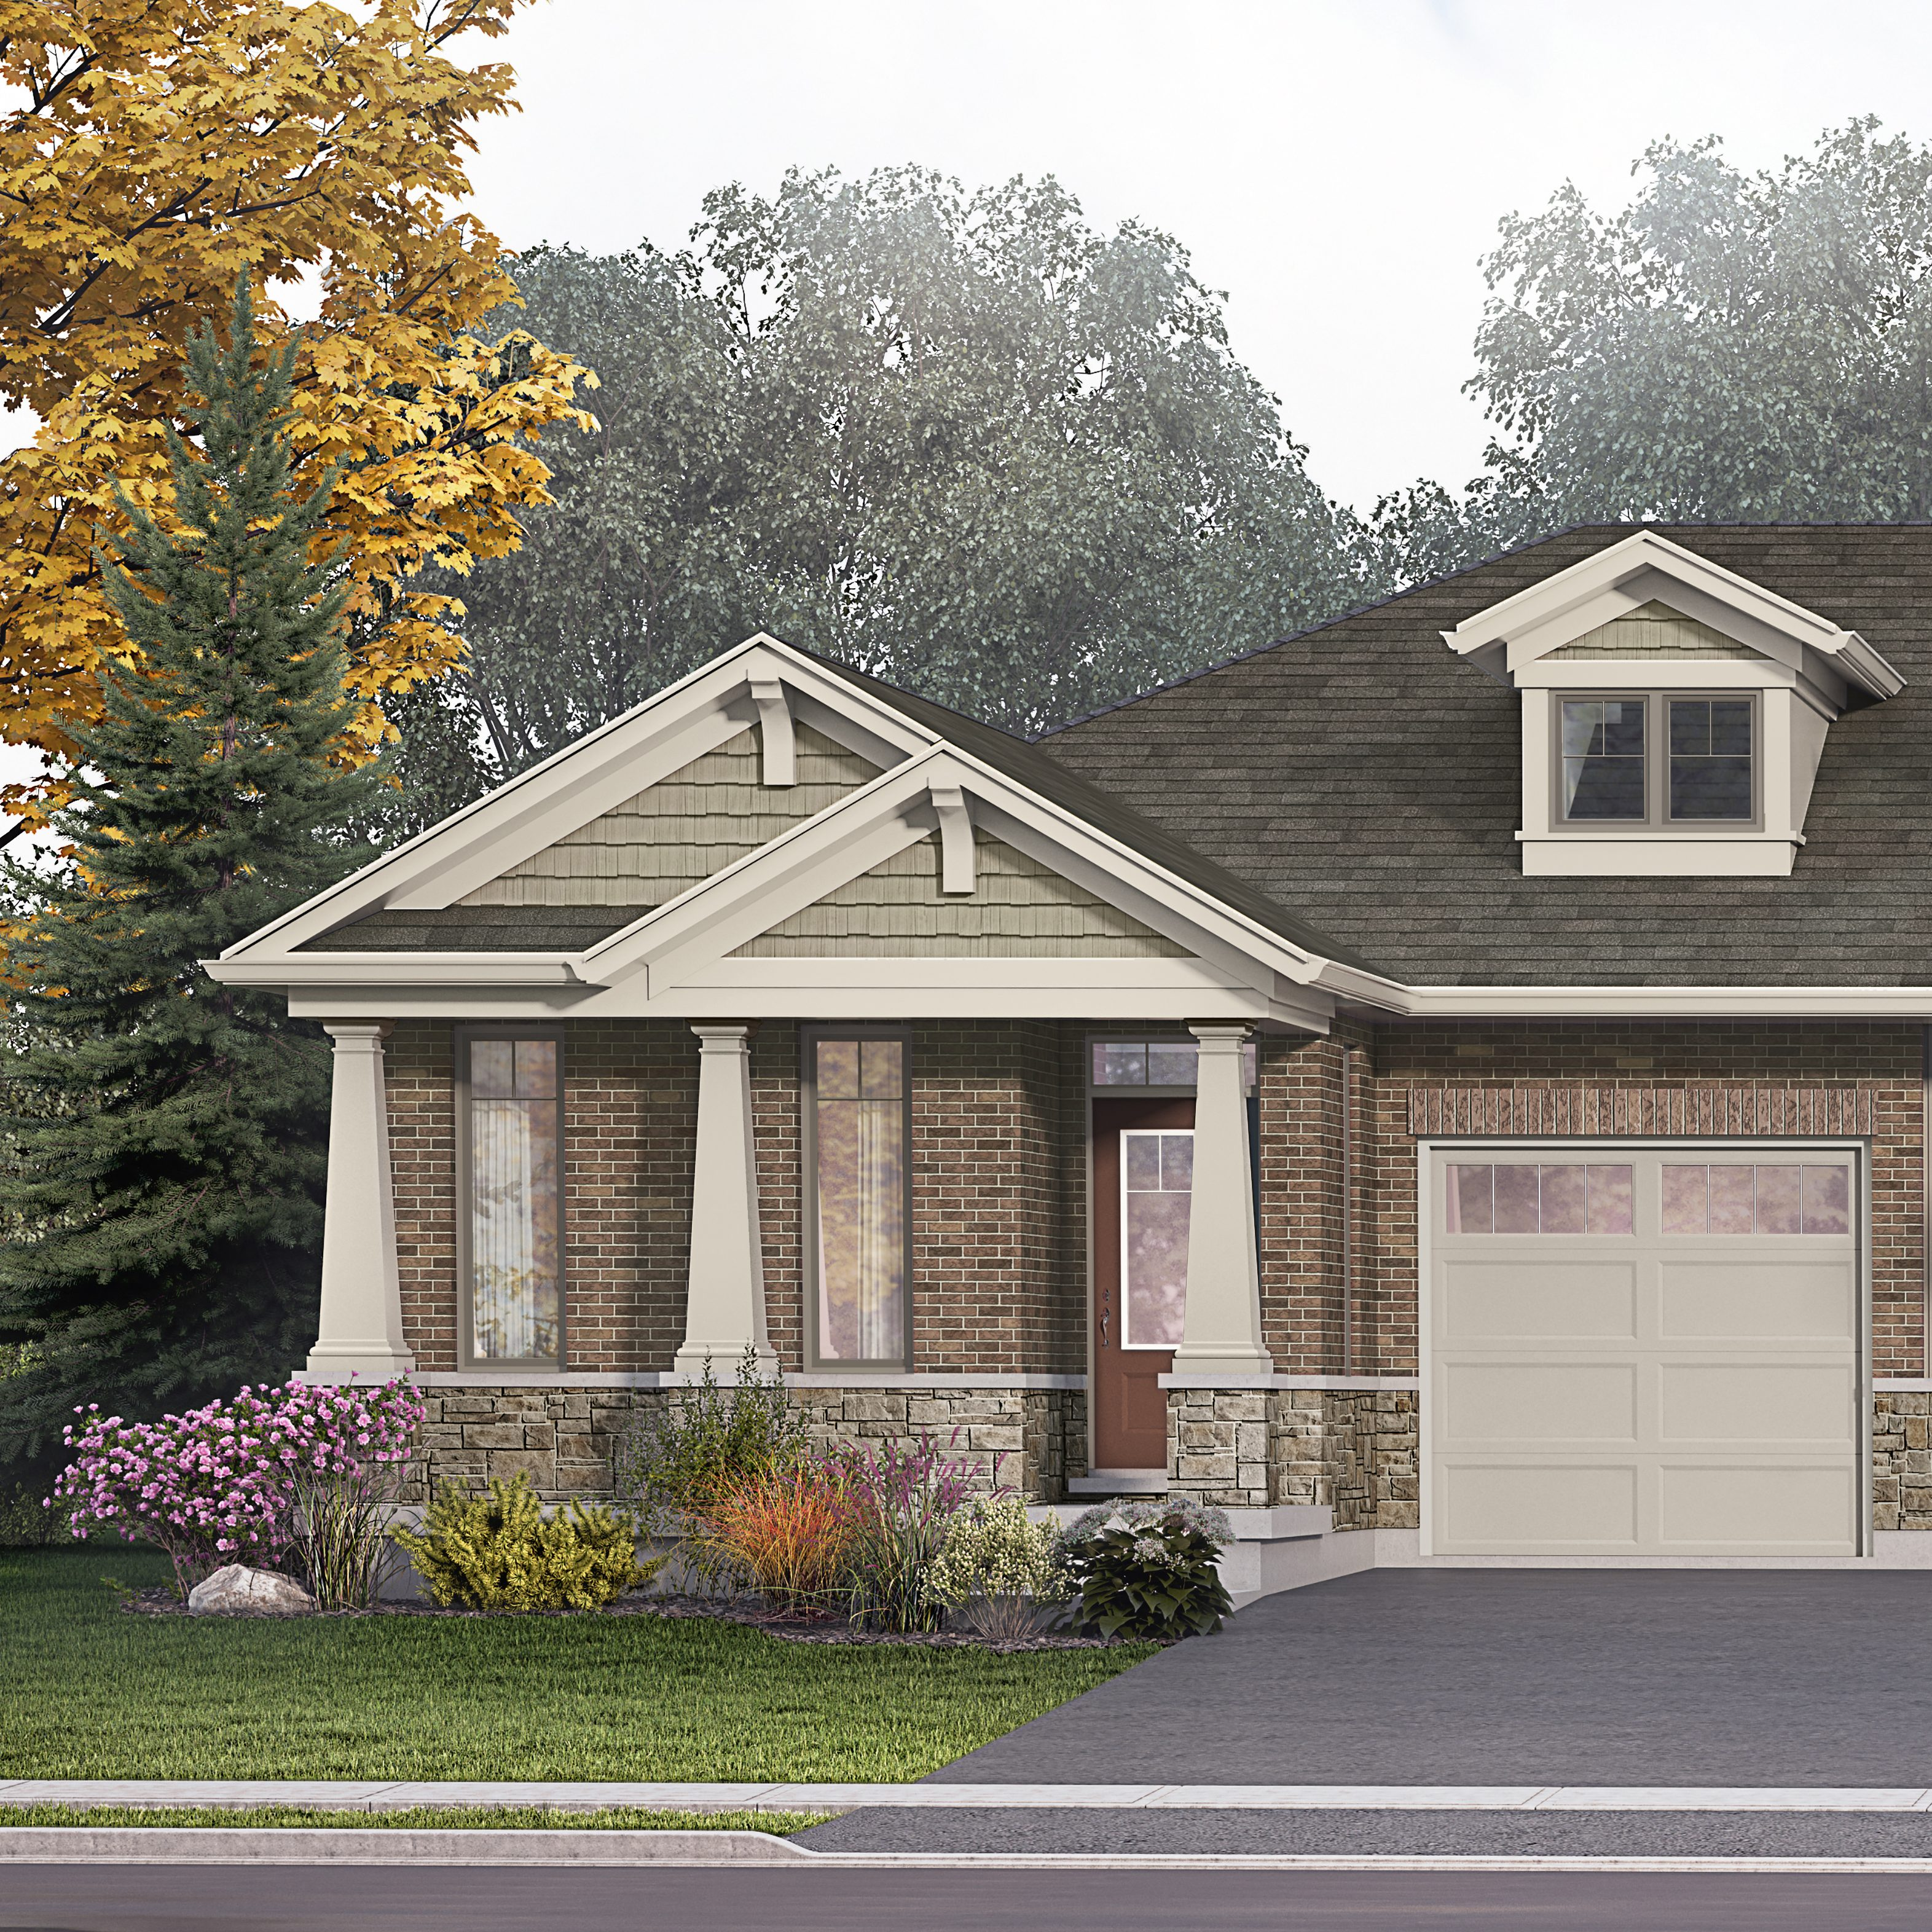 Merritton Commons phase 2 bungalow end